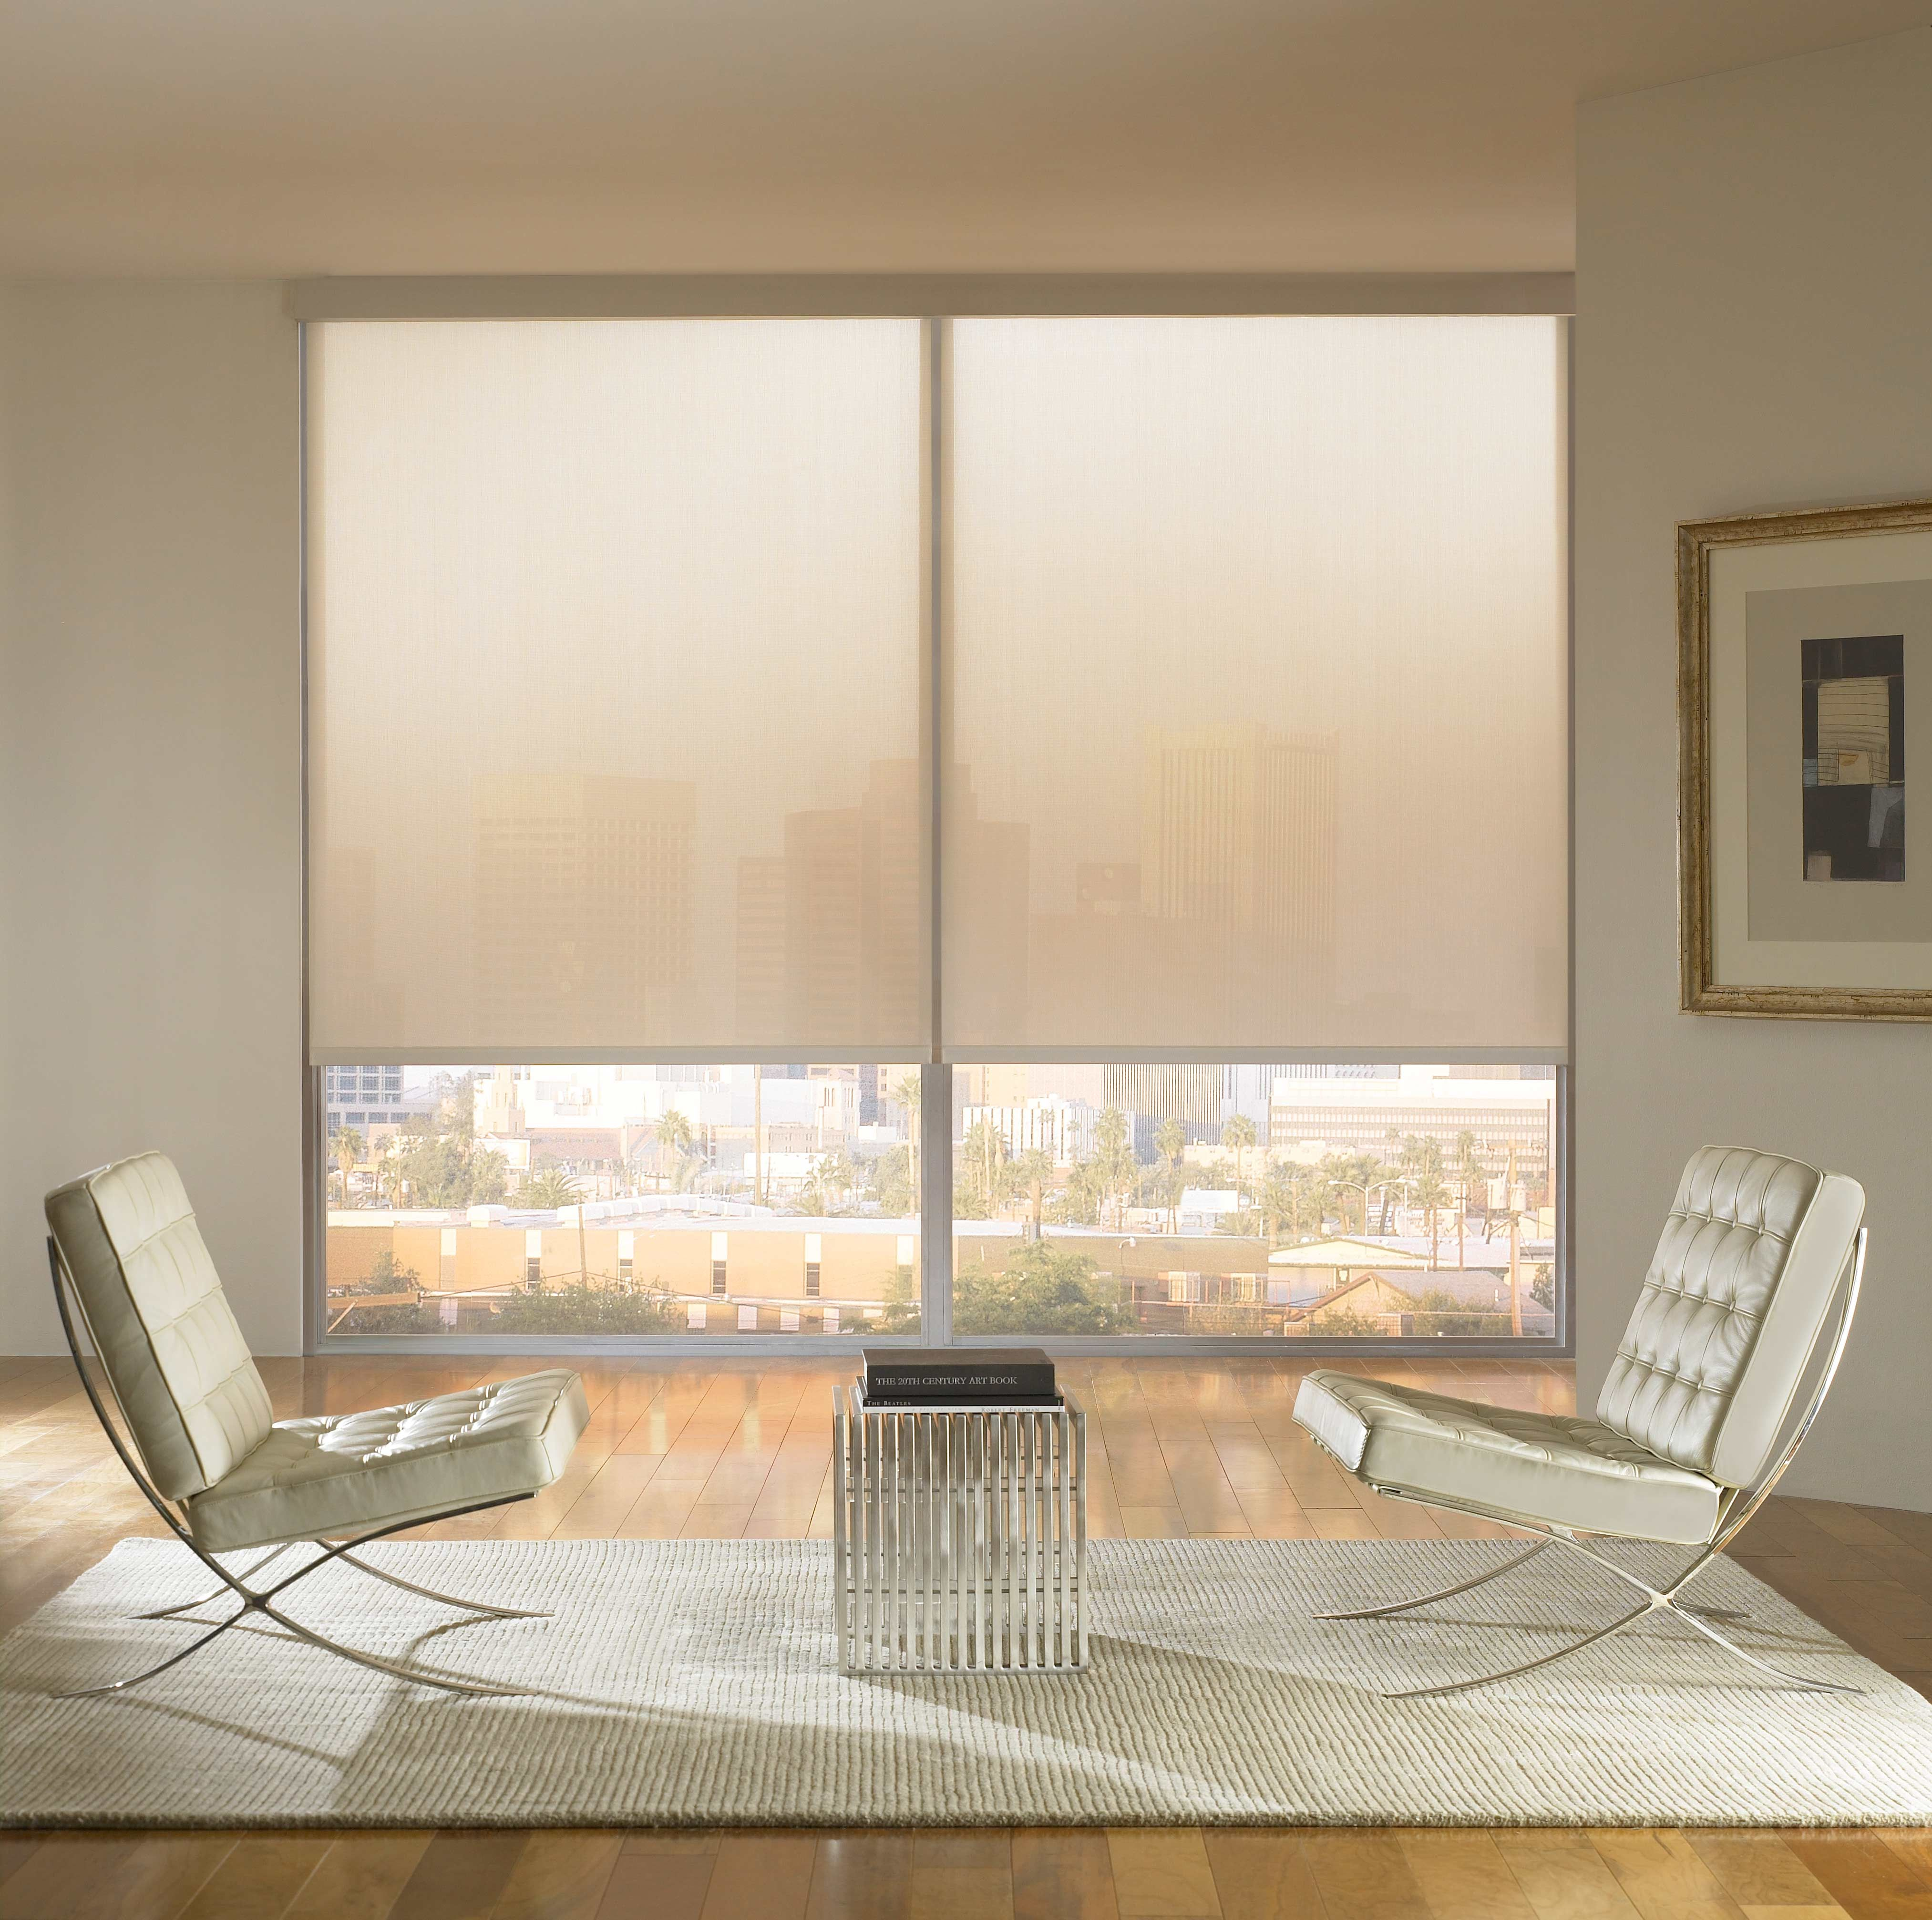 Motorized shades help set the right mood in your condo for Motorized solar shades for windows